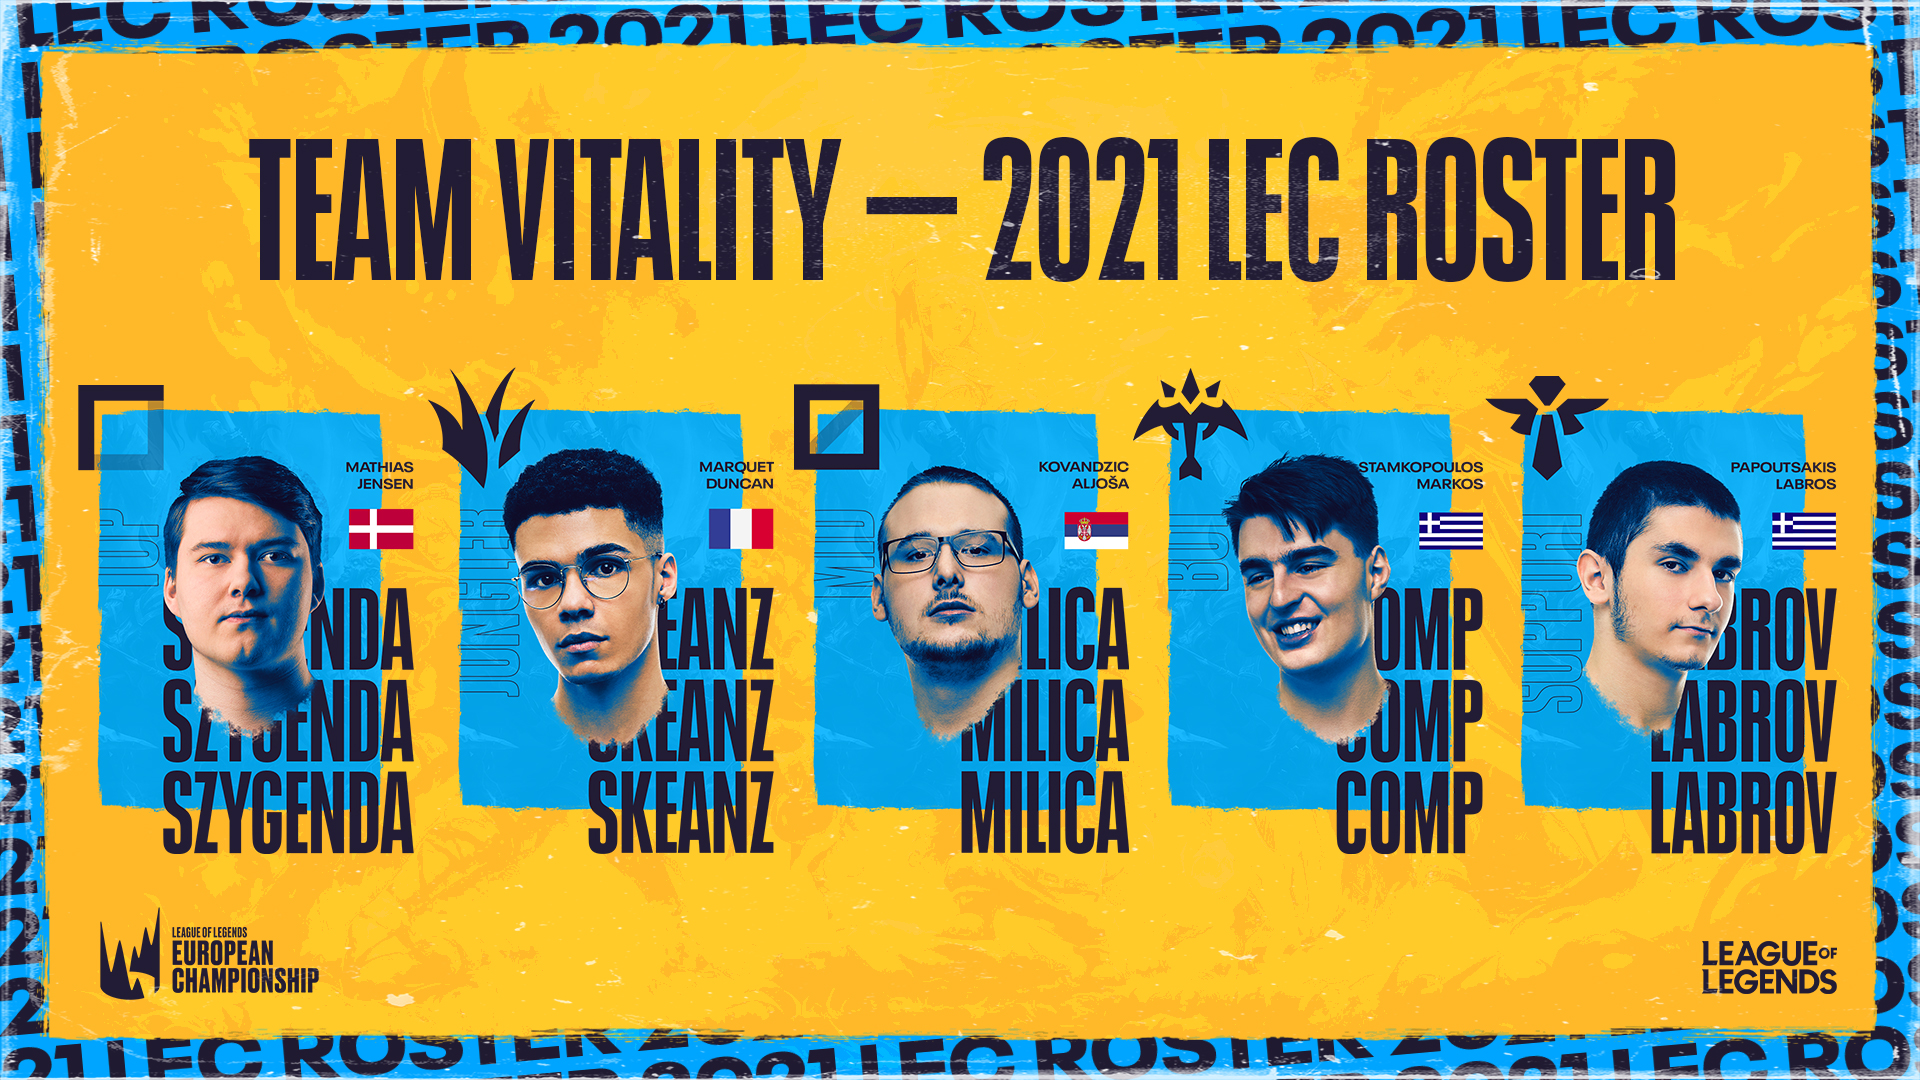 vitality lec roster